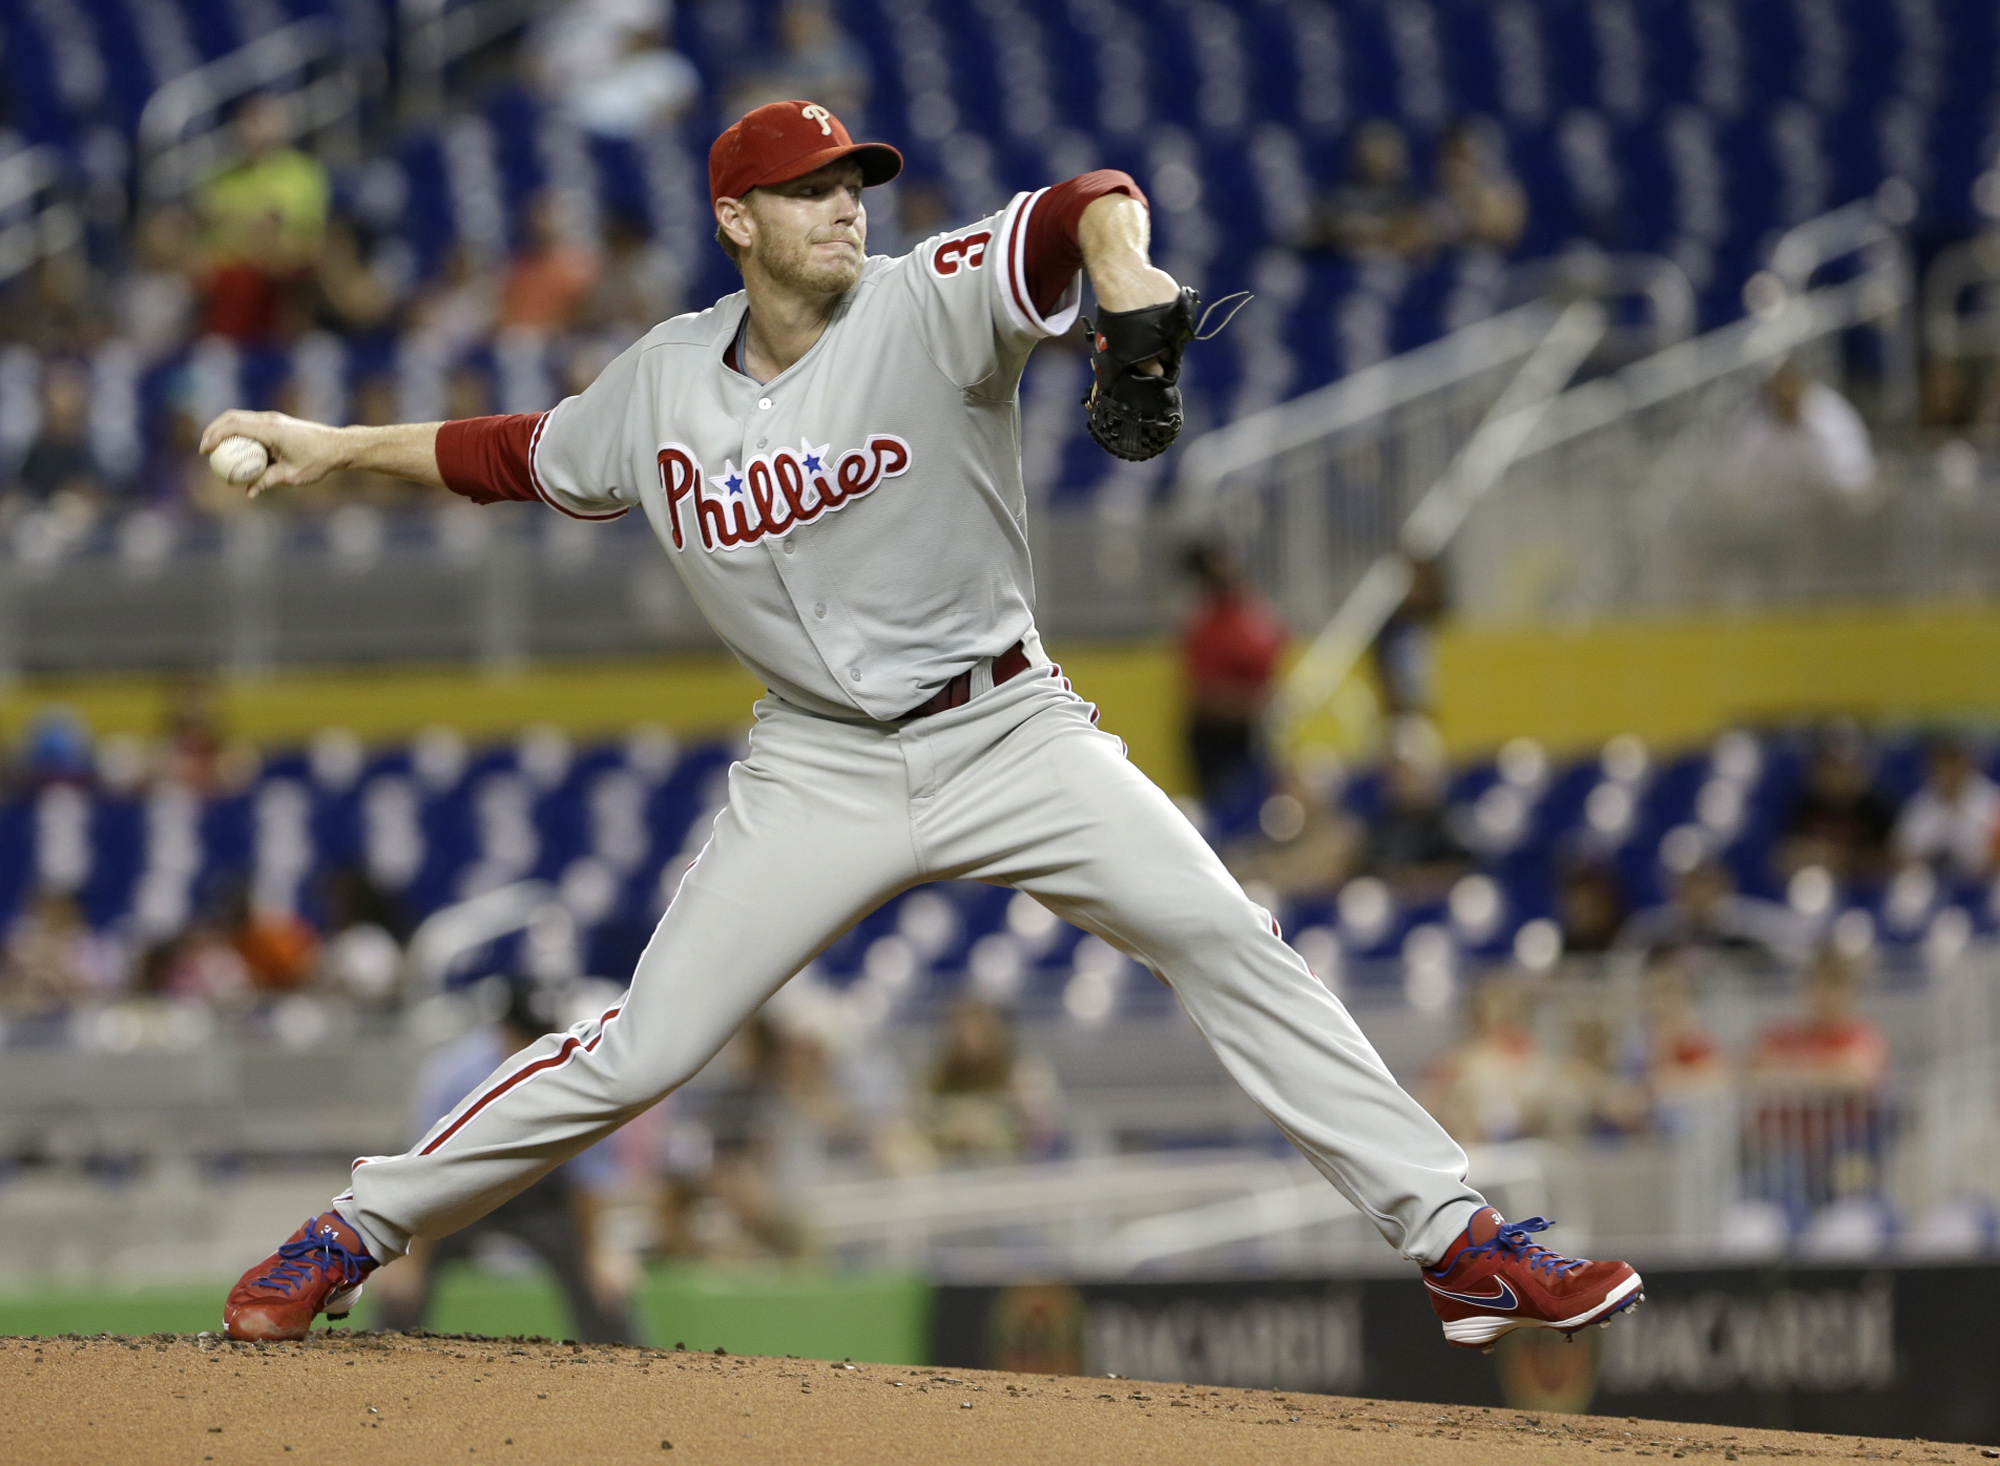 Photo: AC Roy Halladay Remembrance Action